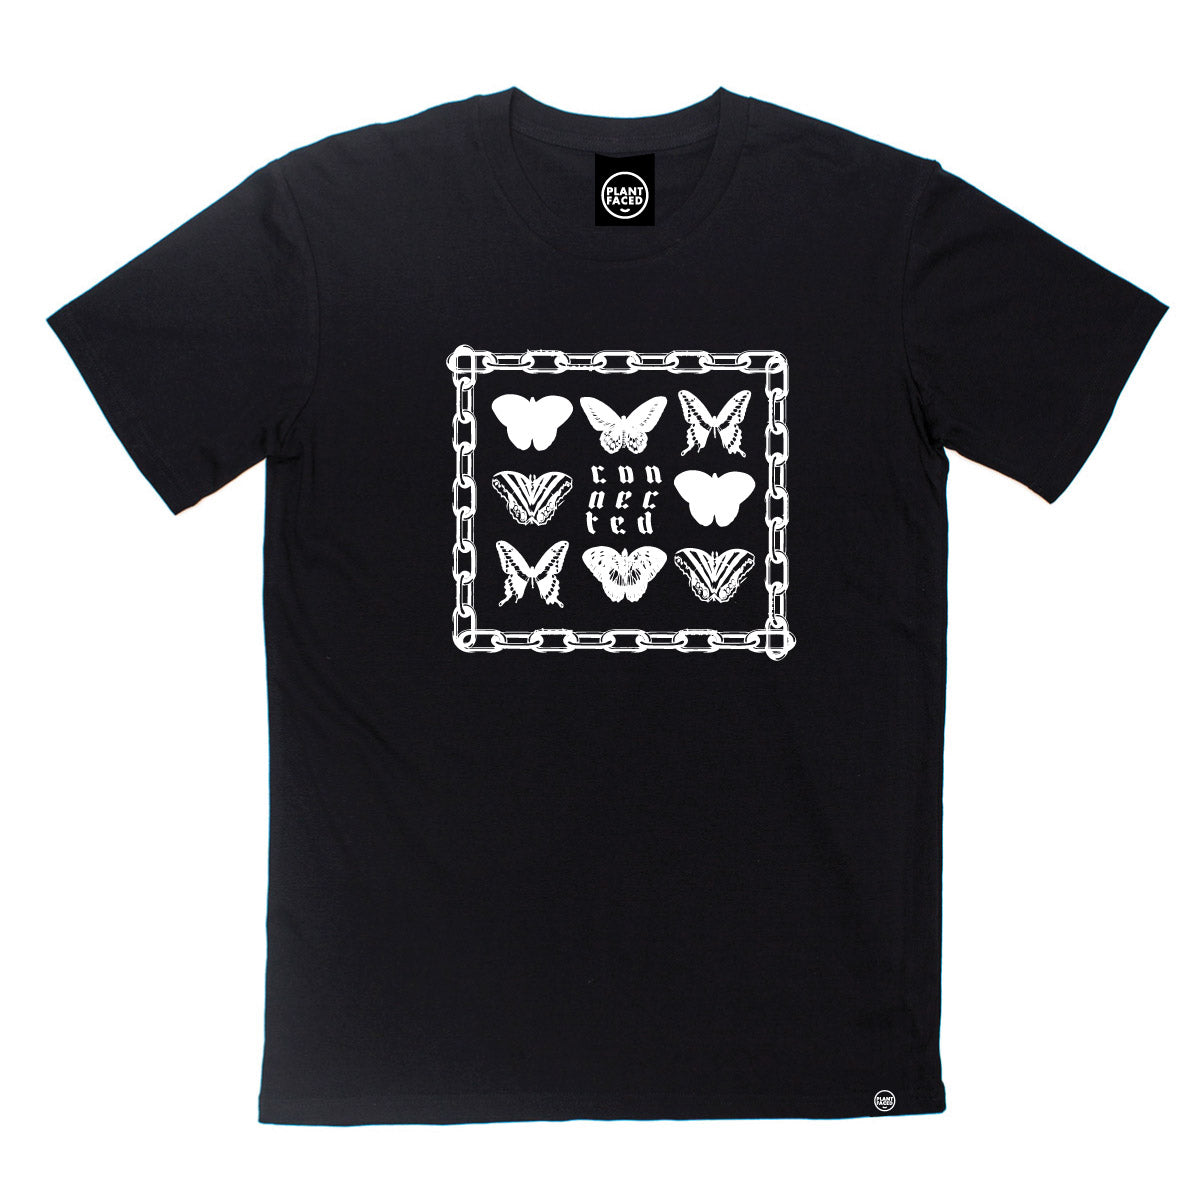 Connected - Black T-Shirt